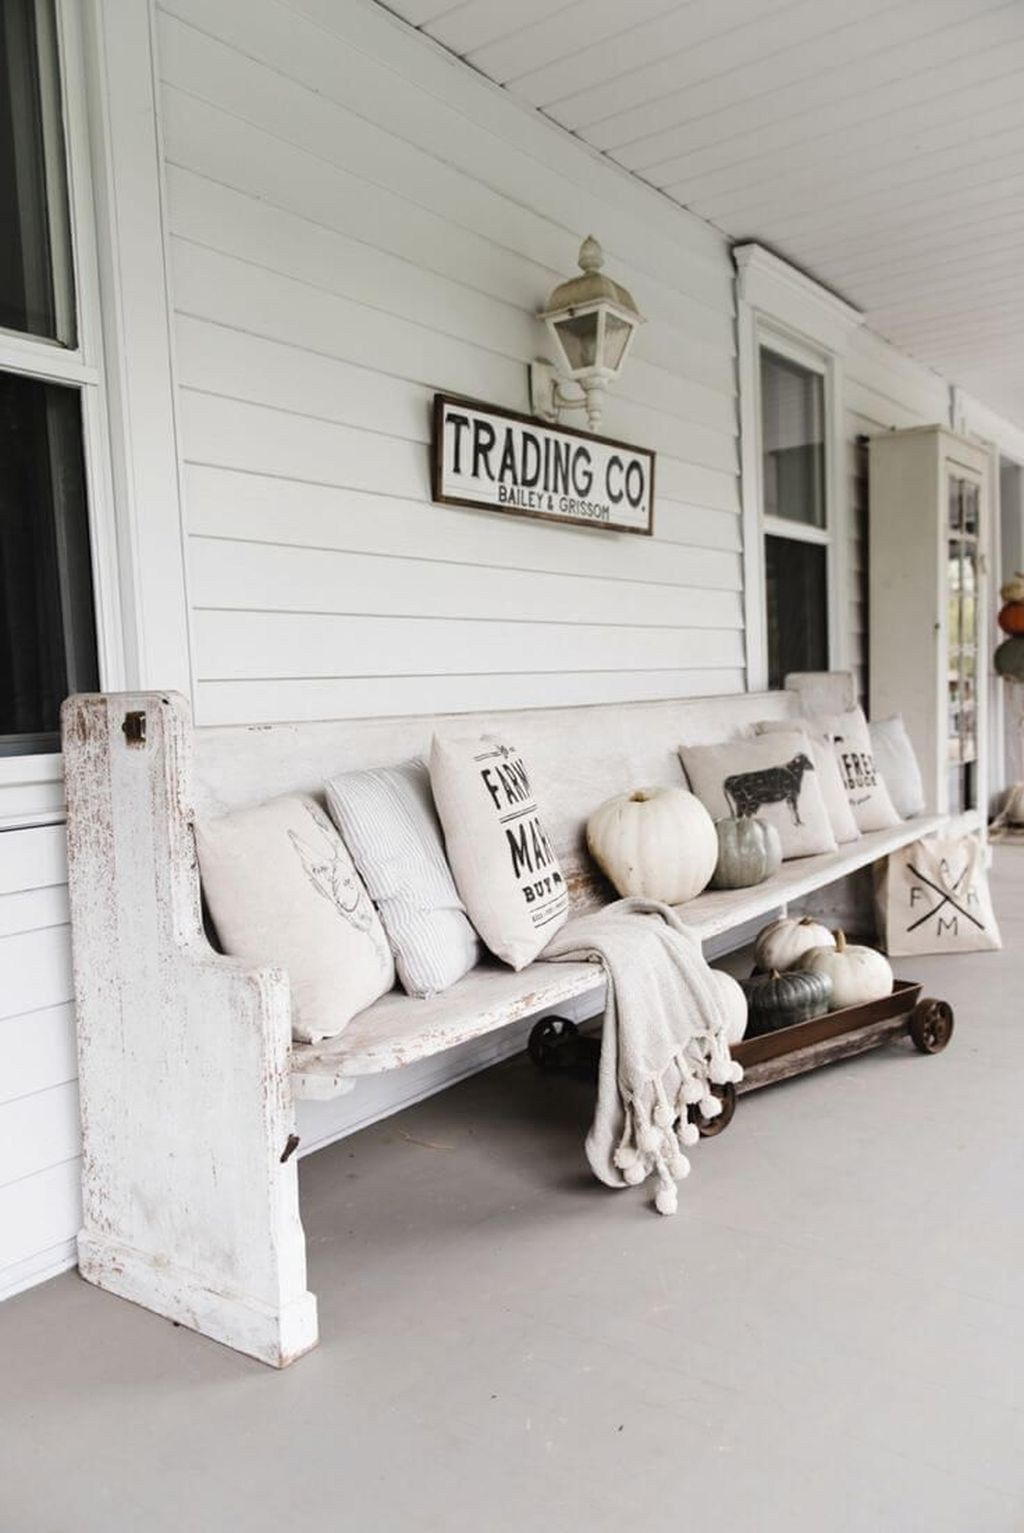 38 Amazing Antique Farmhouse Decoration Ideas For Your Home Decor - BUILDEHOME #antiquefarmhouse